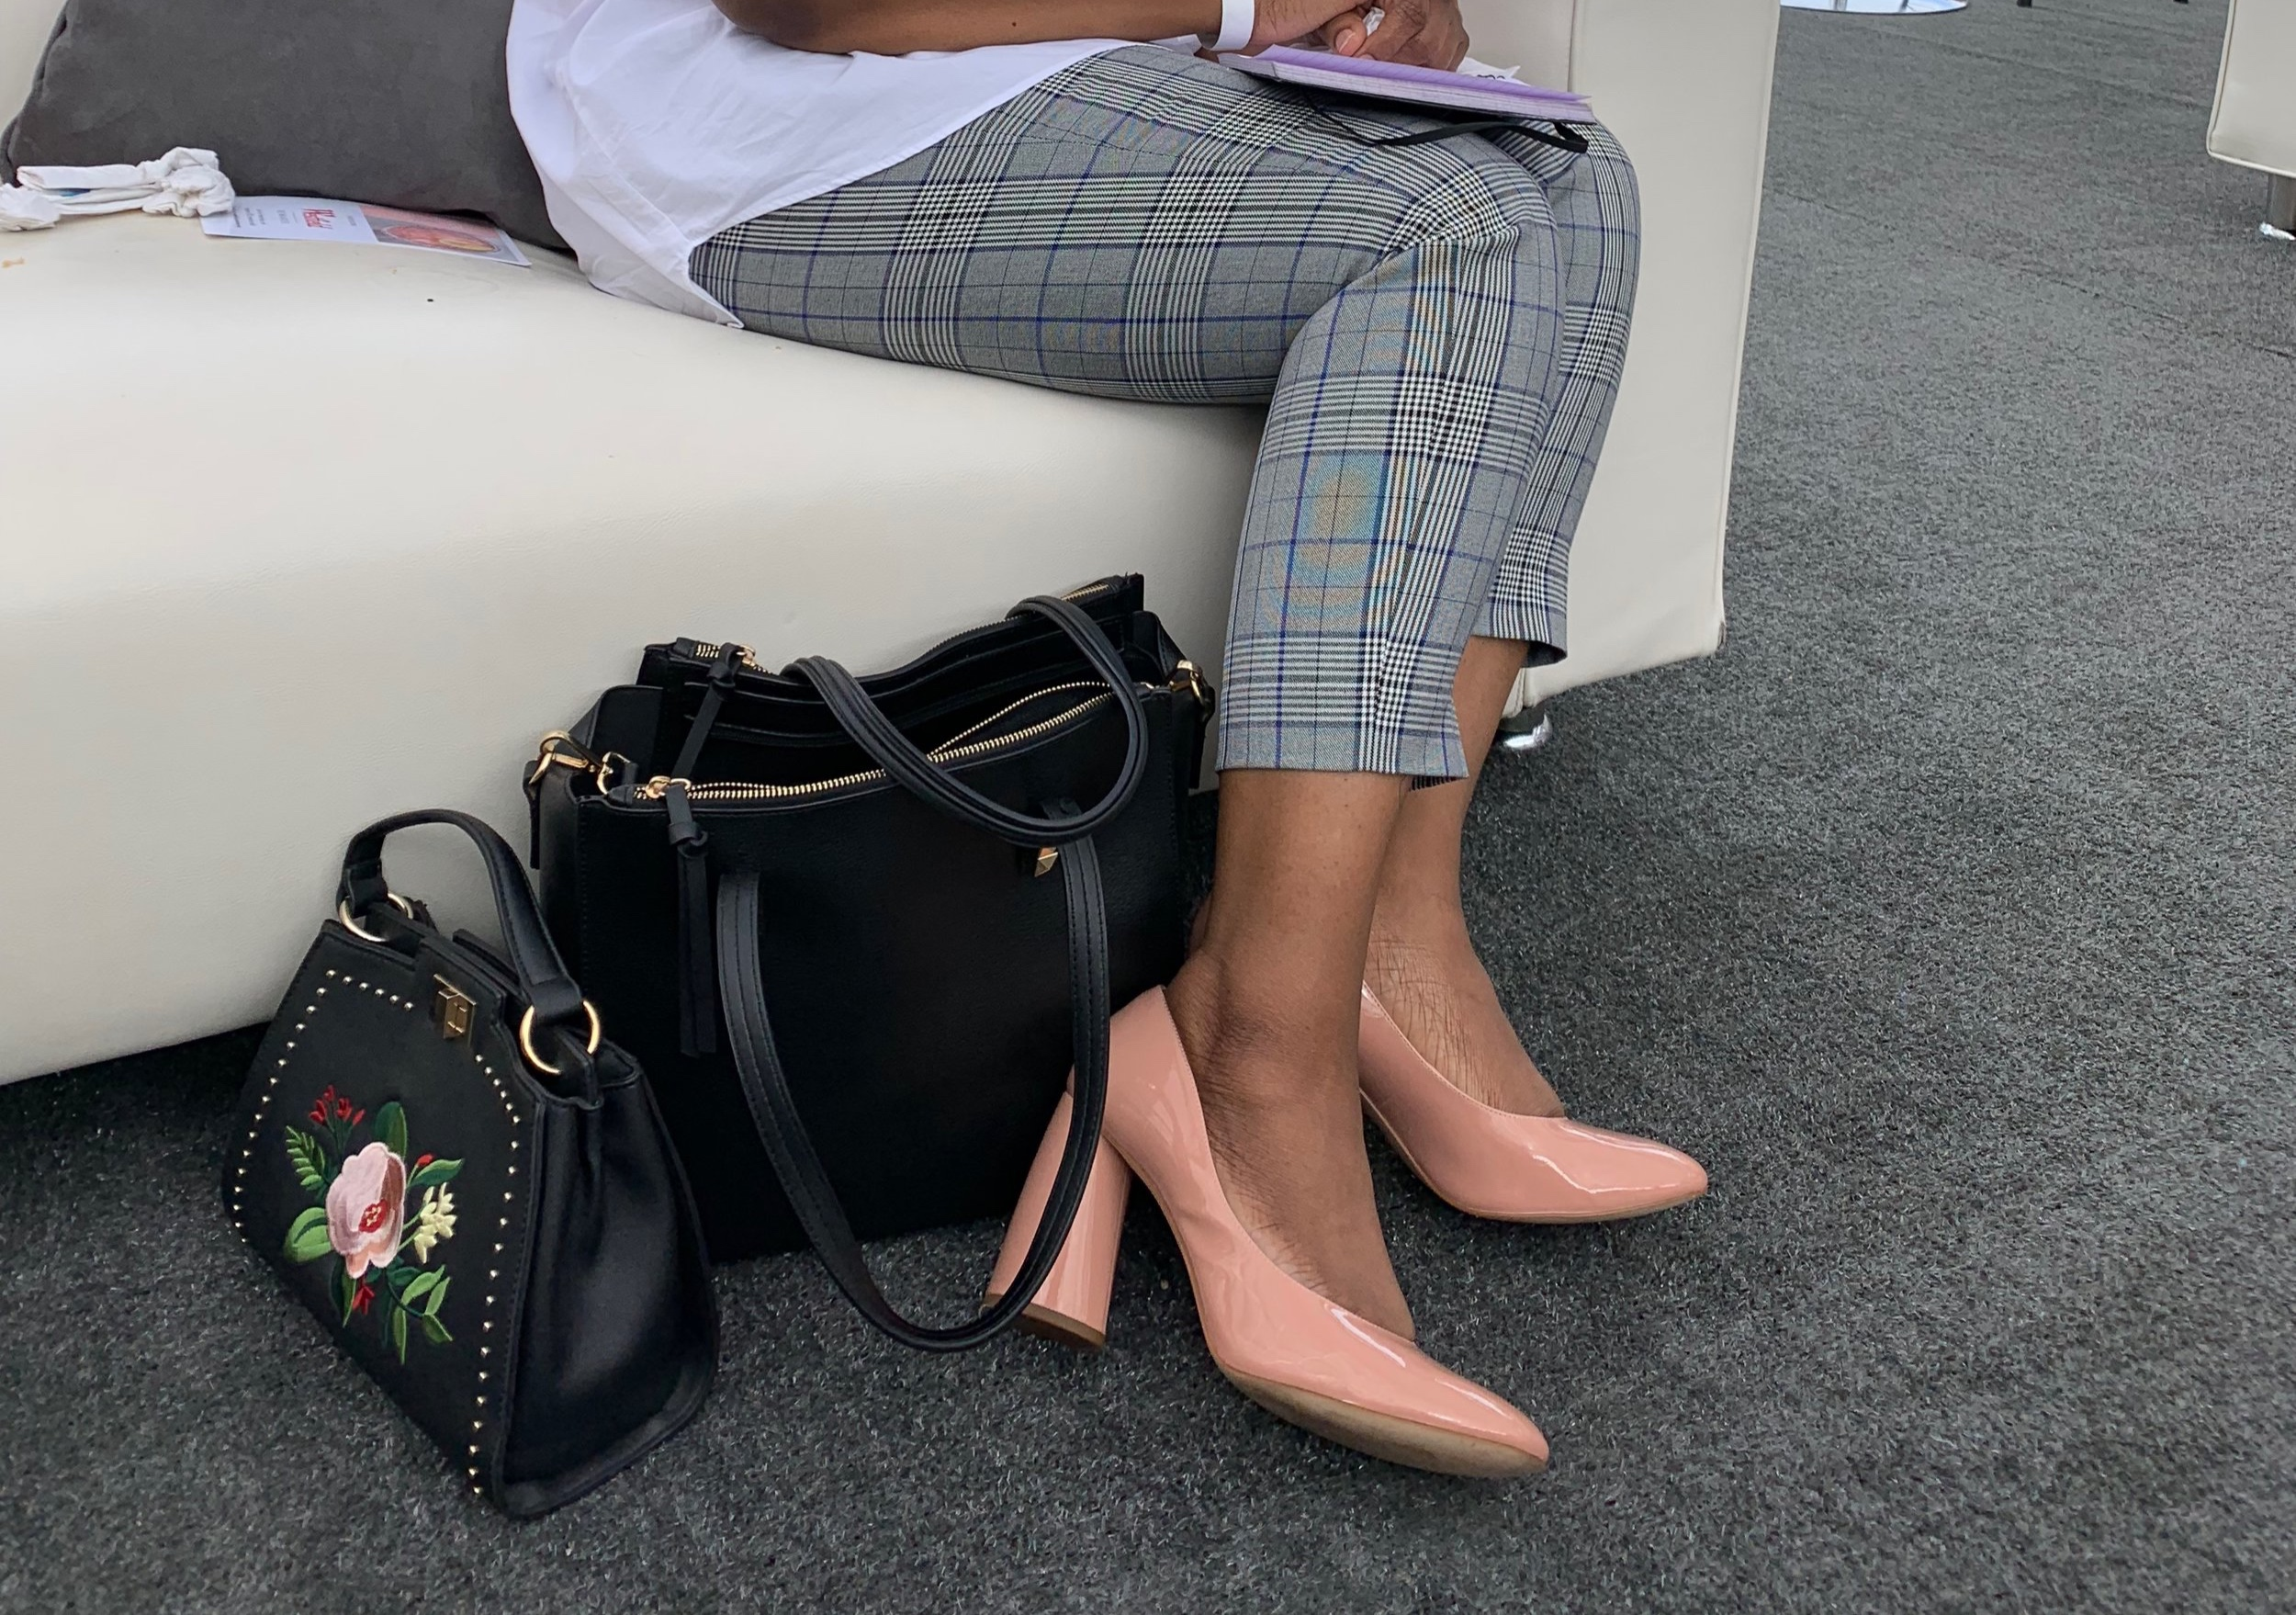 My trousers are by   Halogen   also from  NordstromRack  for a steal of  $17.49 !!!!!! YES! These are a  chic  staple .  I will wear them with  sneakers, flip flop, boots  whatever. The  fit  is easy and offers  easy styling.  The shoe is from  My Easter style blog  for details.